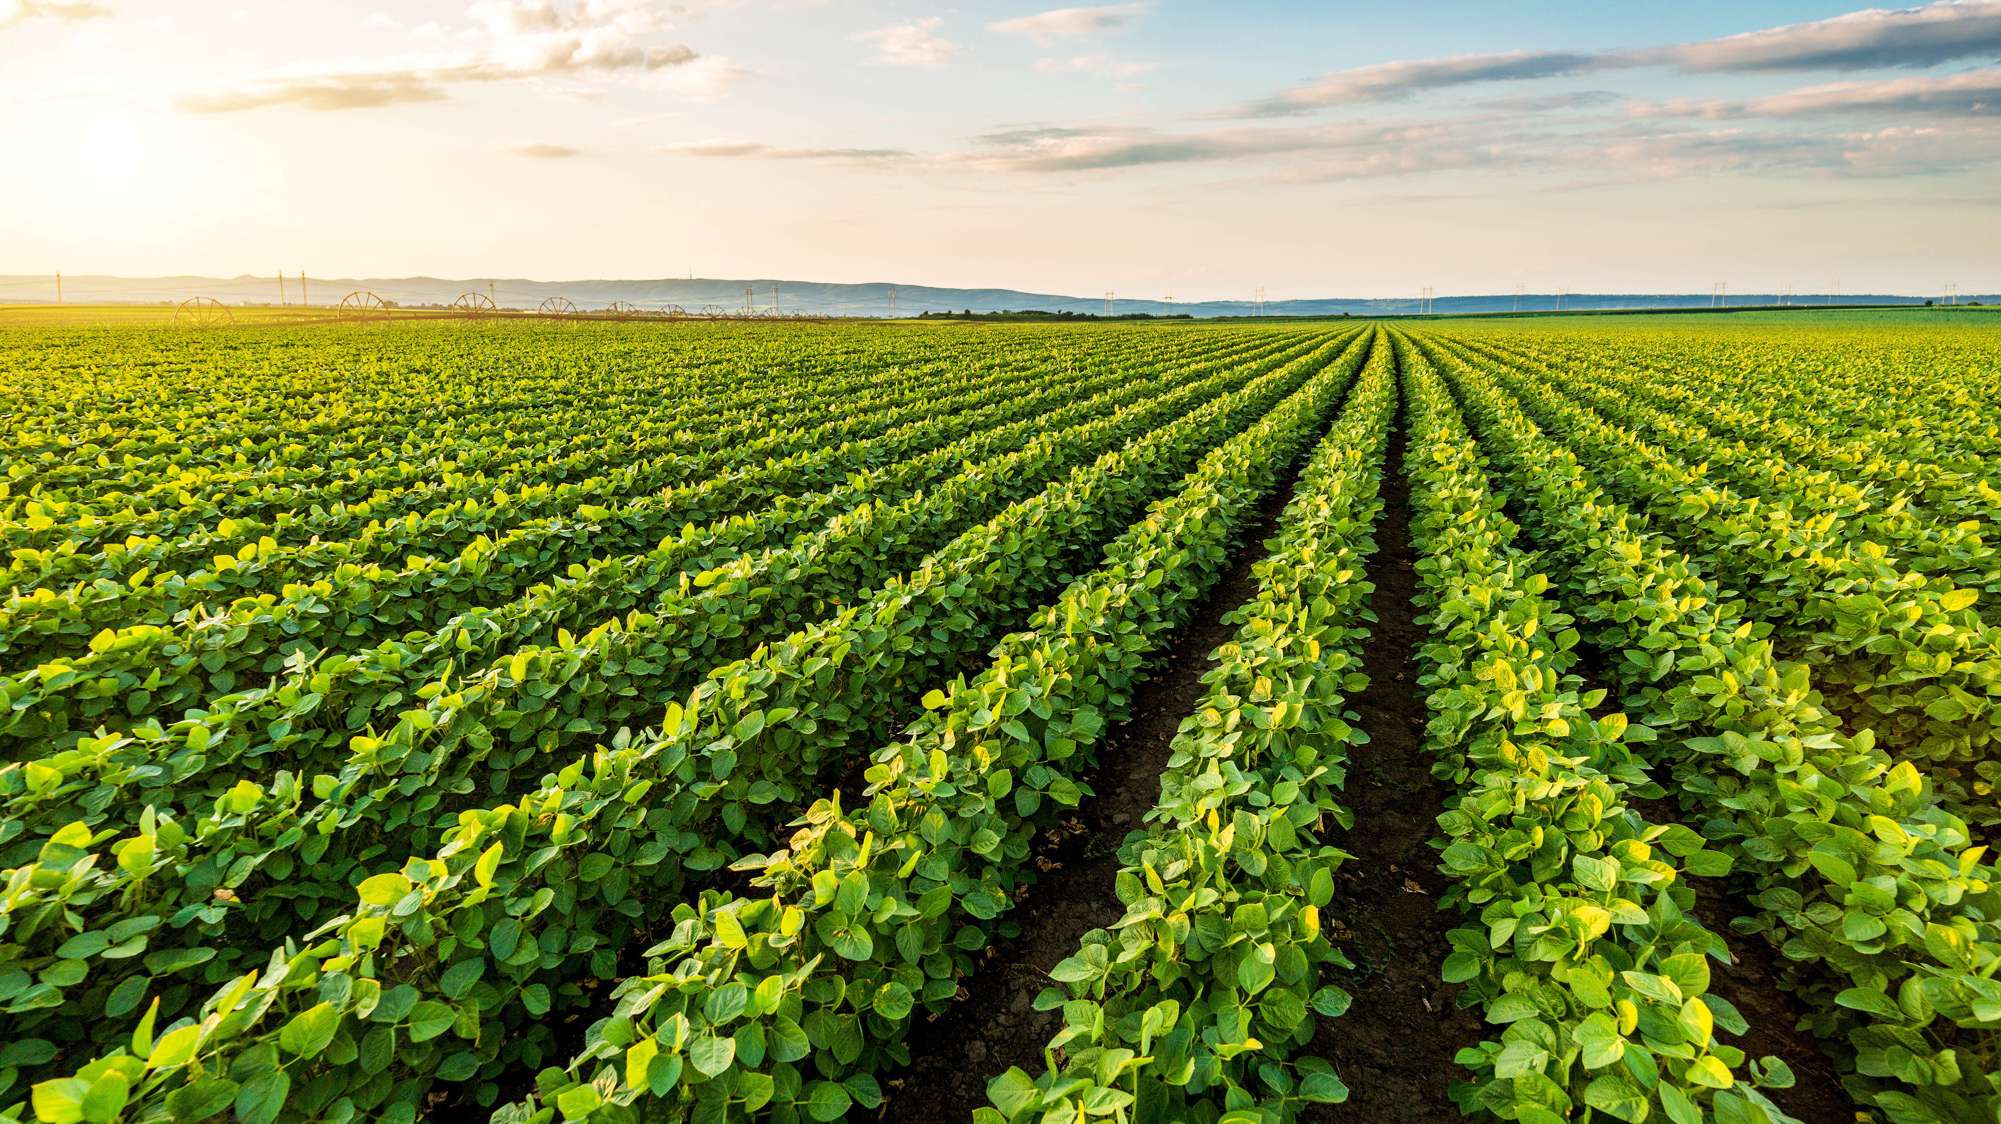 Header image of potato field